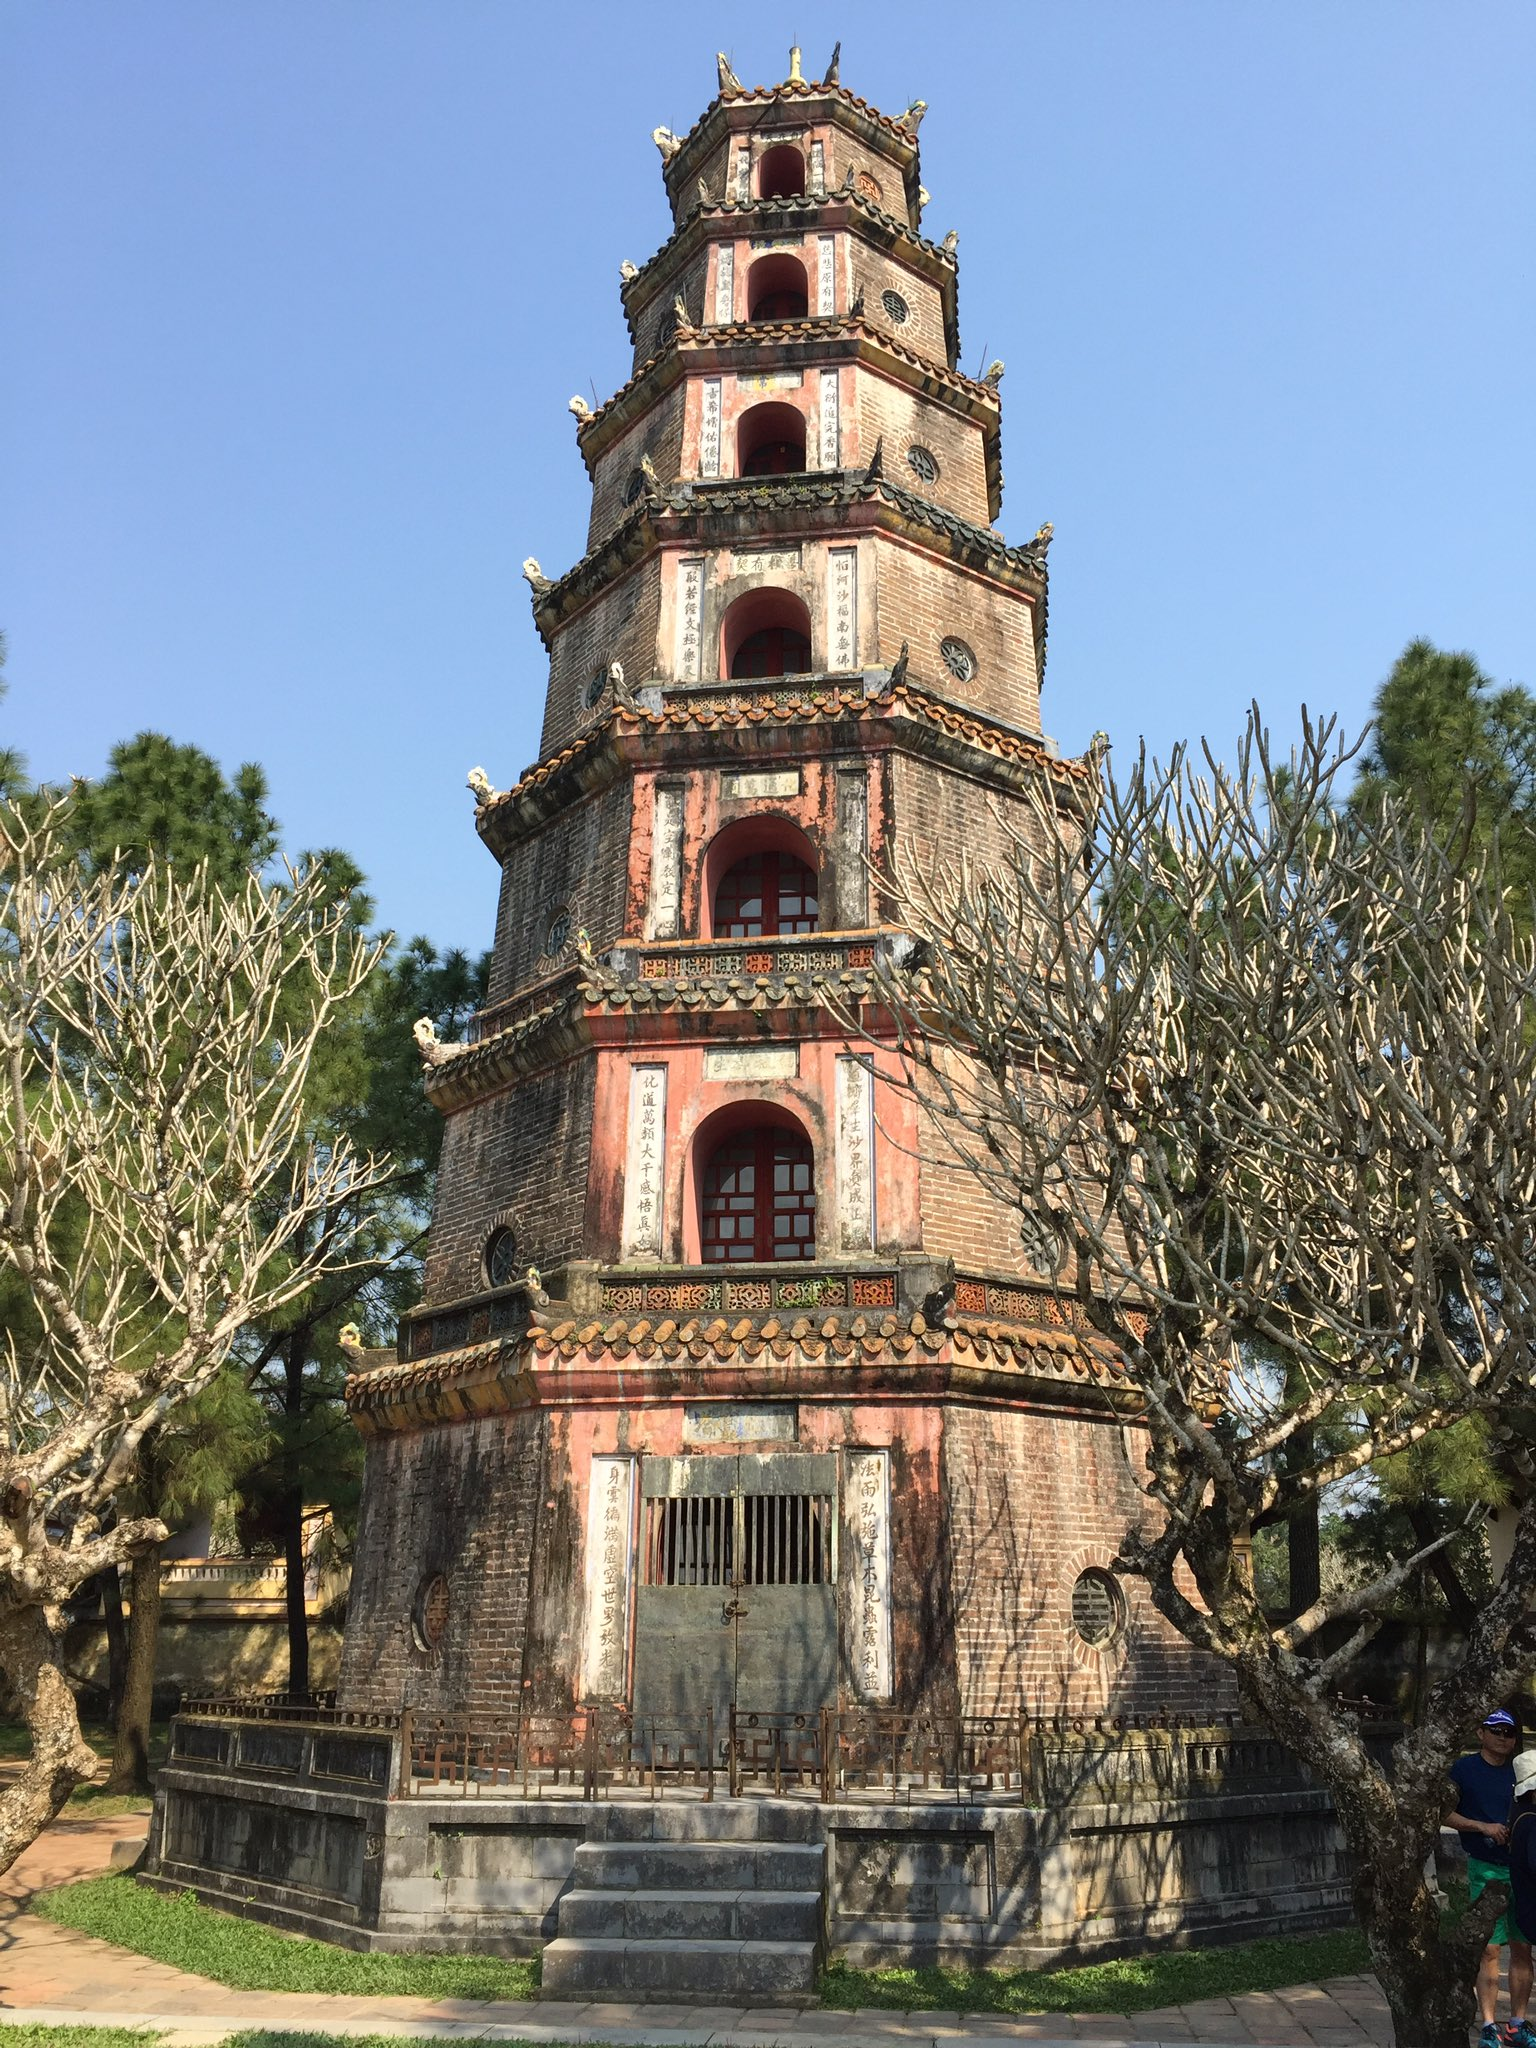 Chùa Thiên Mụ (Pagoda of the Celestial Lady), Huế https://t.co/Hlu4HQn2kG